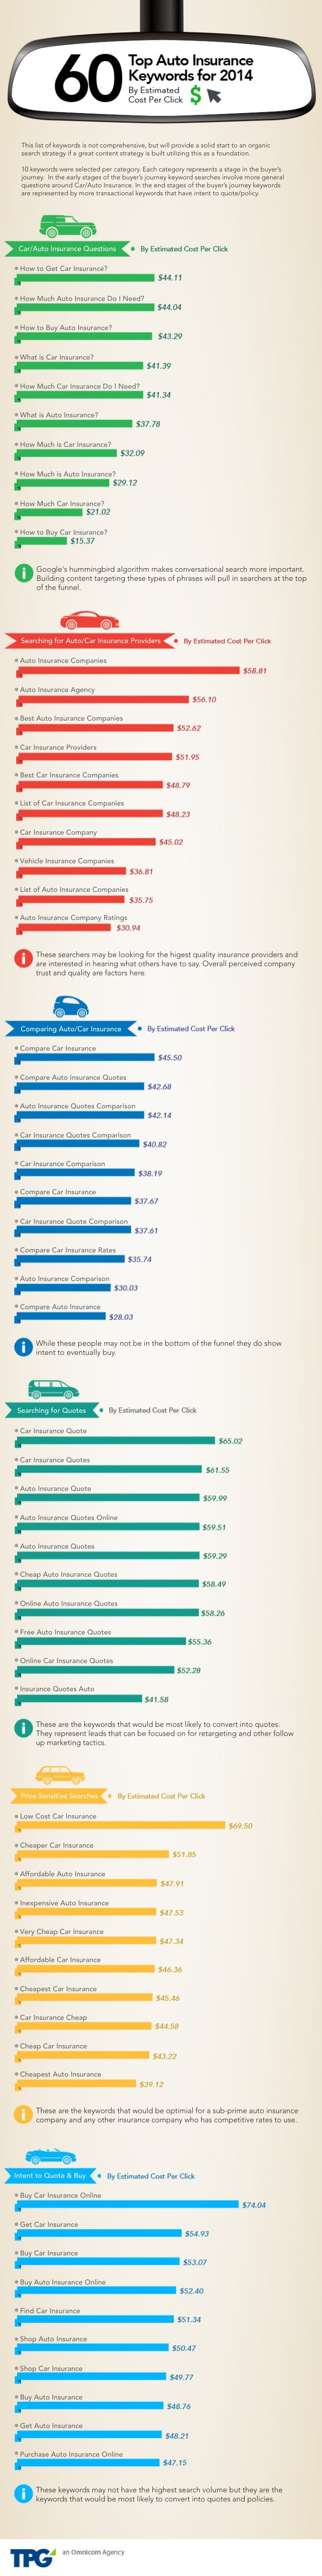 60 Top Auto Insurance Keywords by Estimated Cost Per Click Infographic for 2014